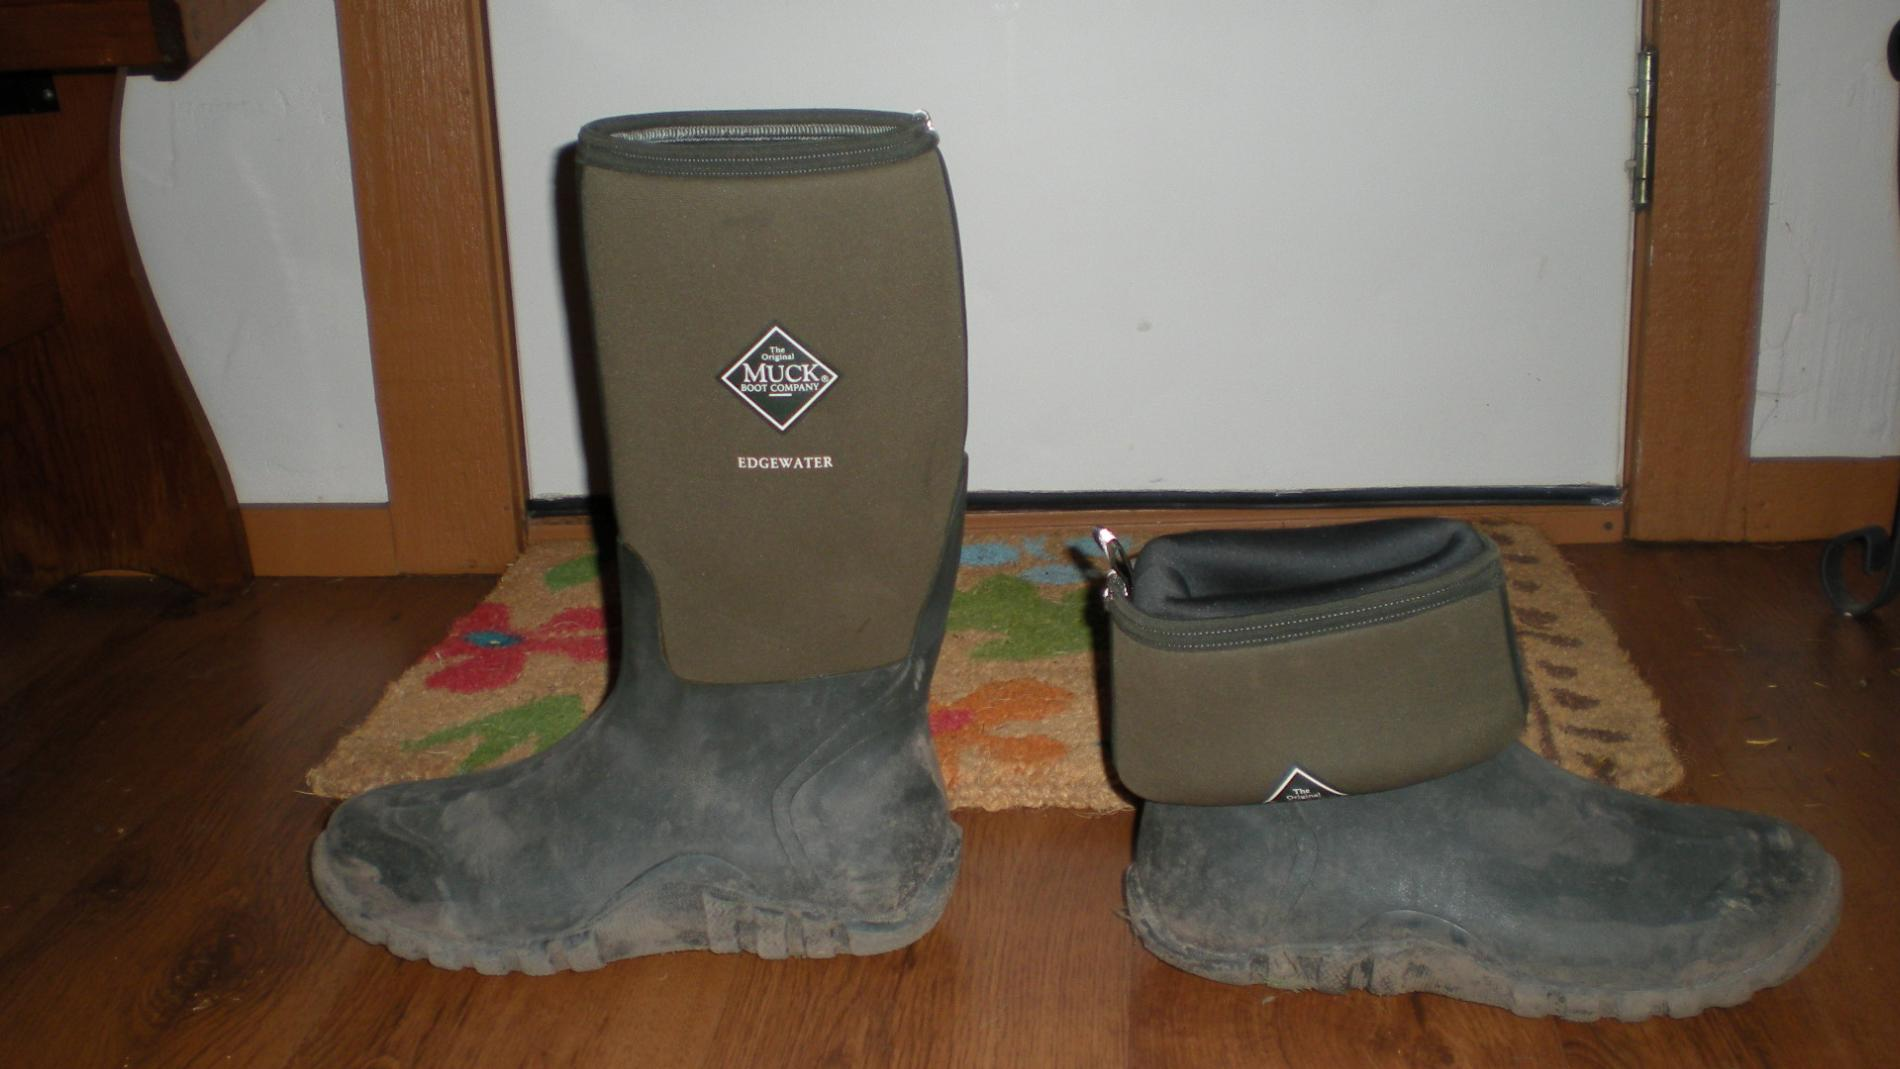 BWCA Knee High Boot Drowings??? Boundary Waters Gear Forum